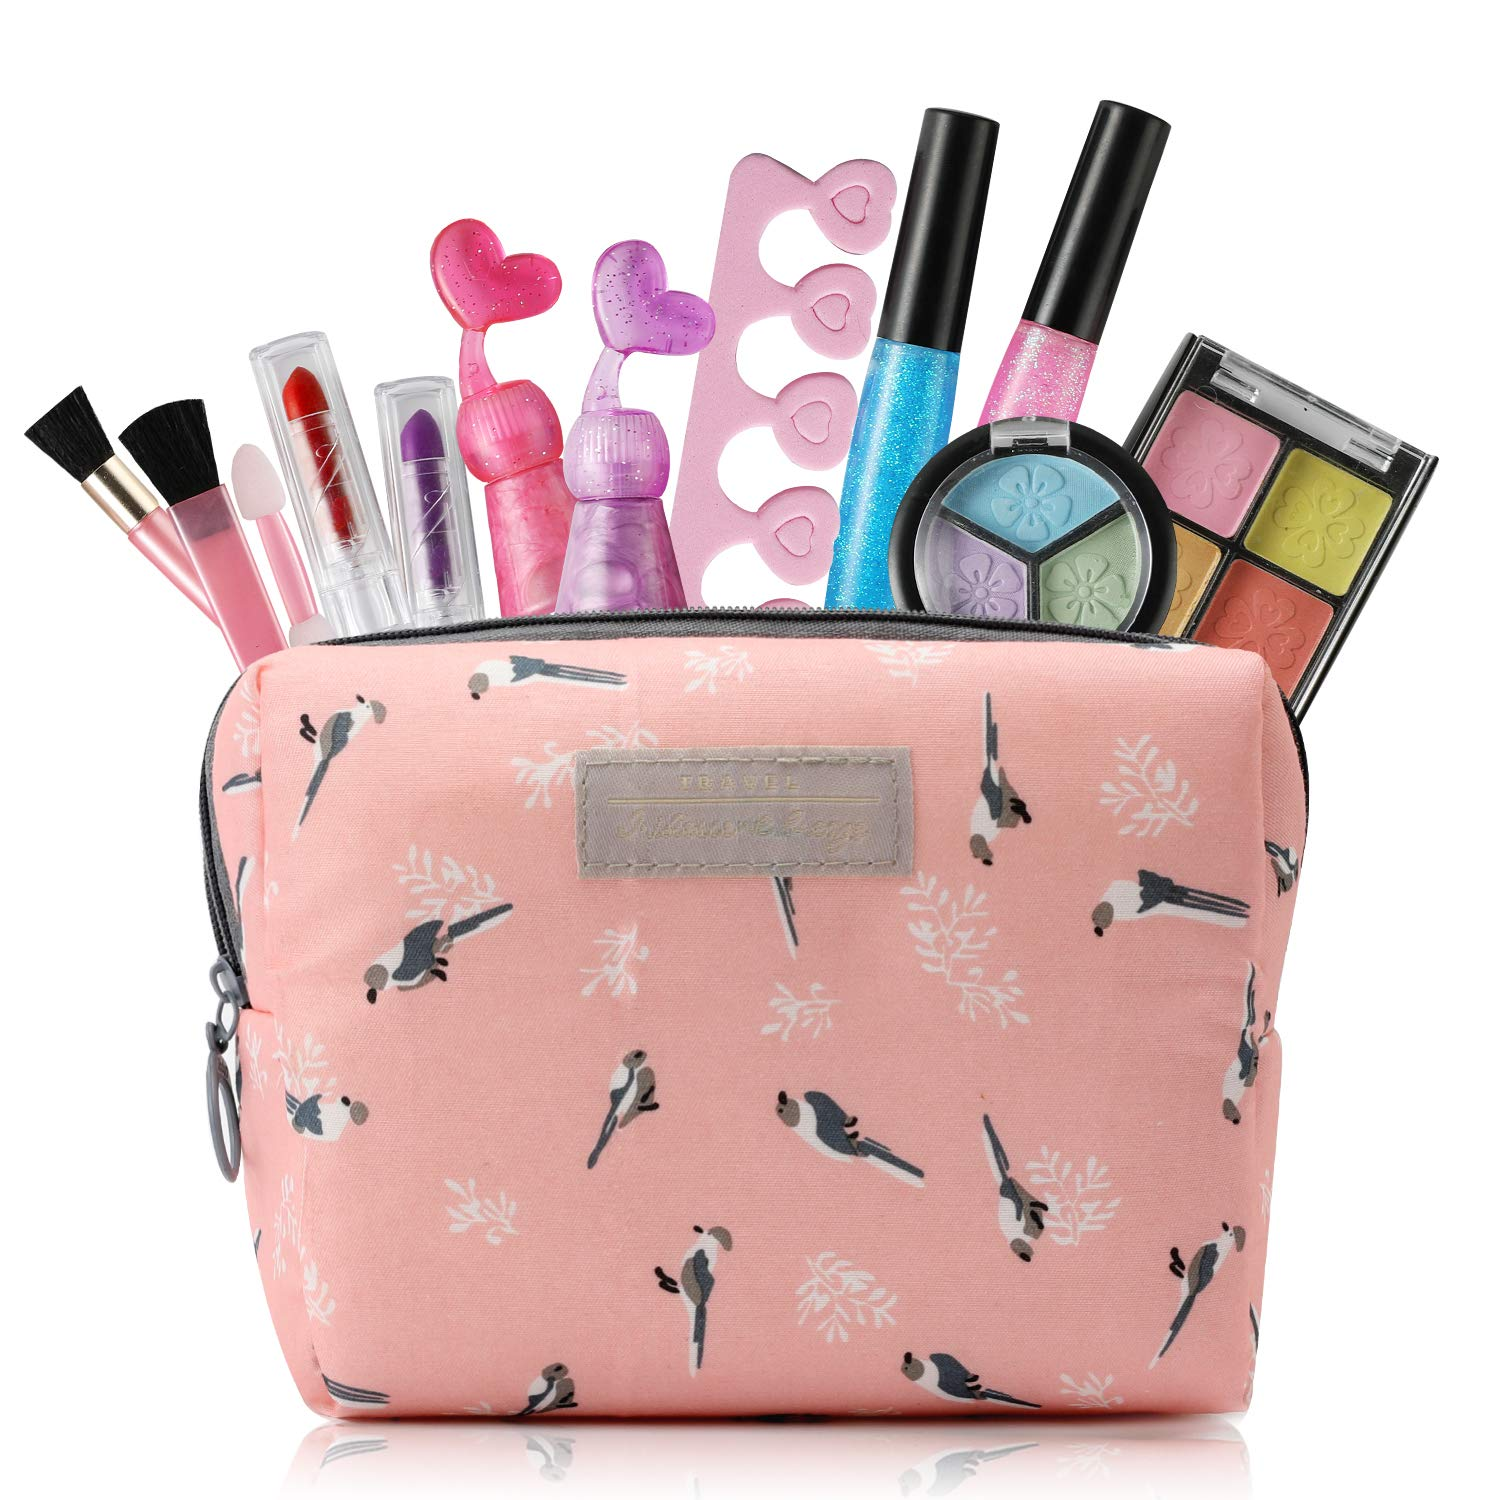 Kids Makeup Kit for Girls with Cosmetic Bag, Kids Toys for 3 4 5 6 7 Year Old Girls